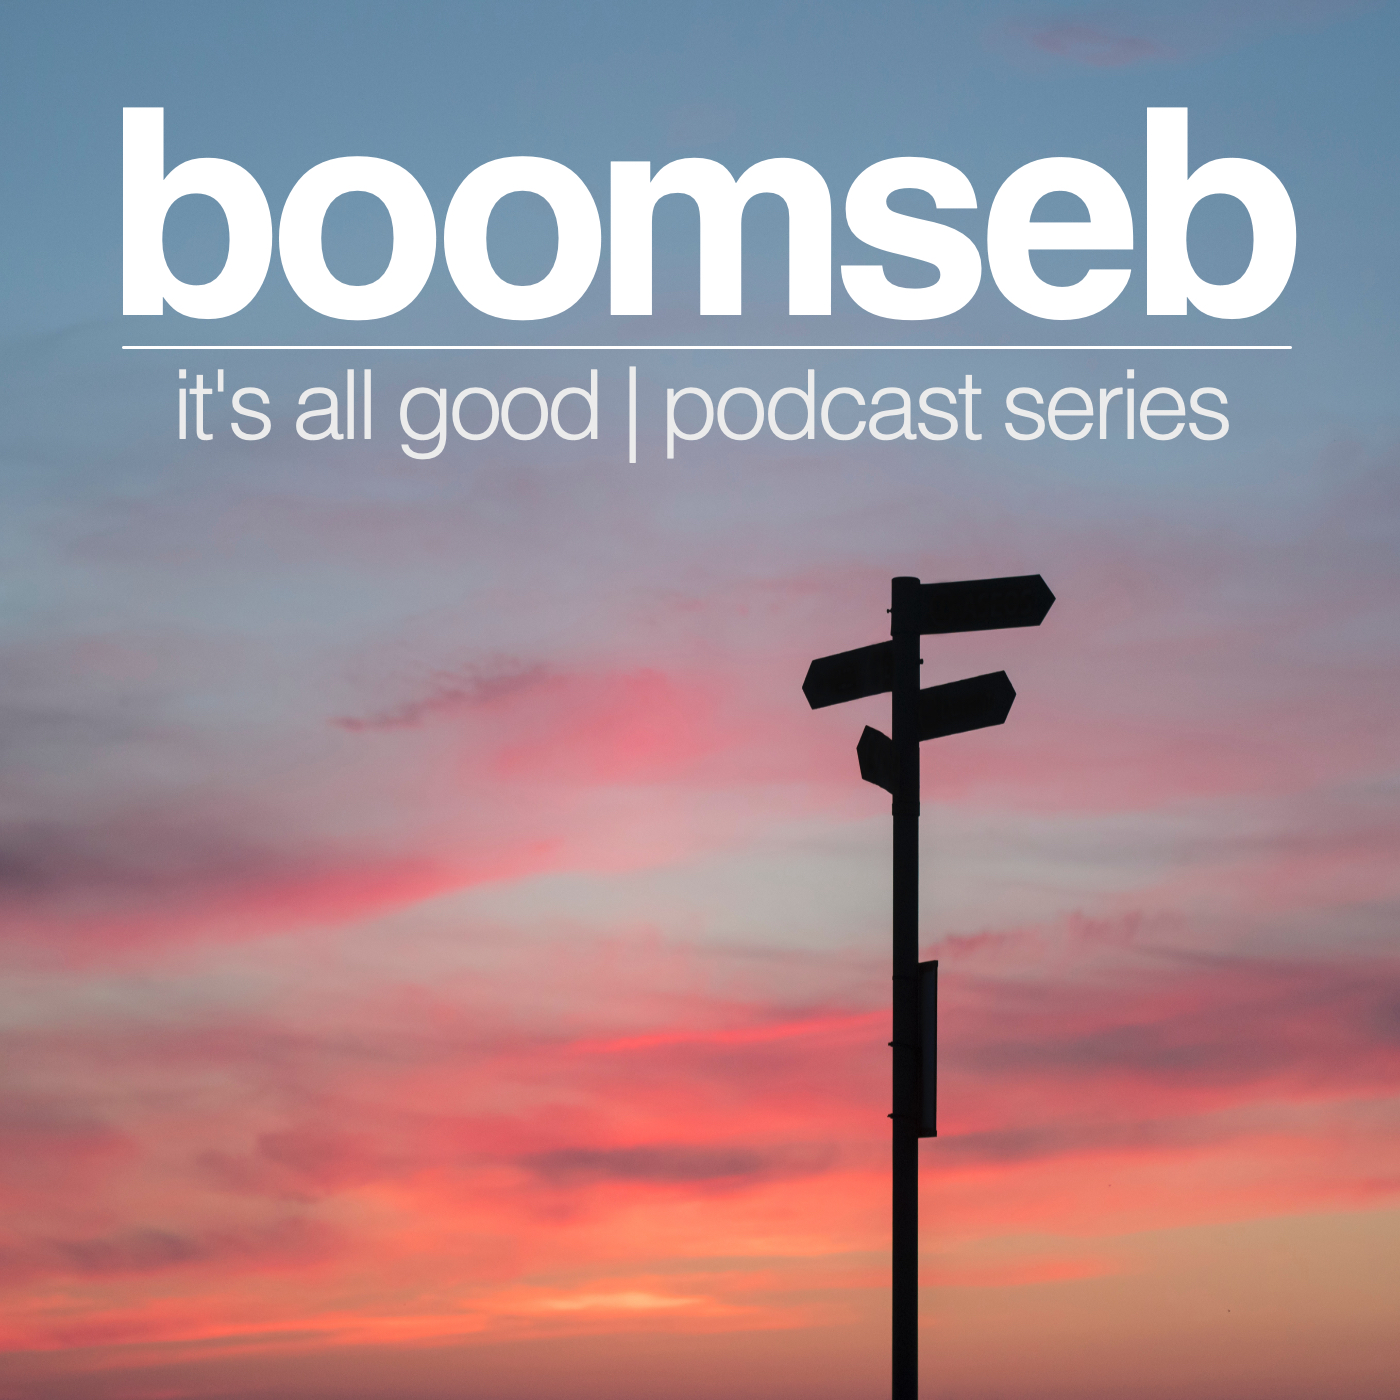 boomseb_podcast_series_all_good_2018.jpg